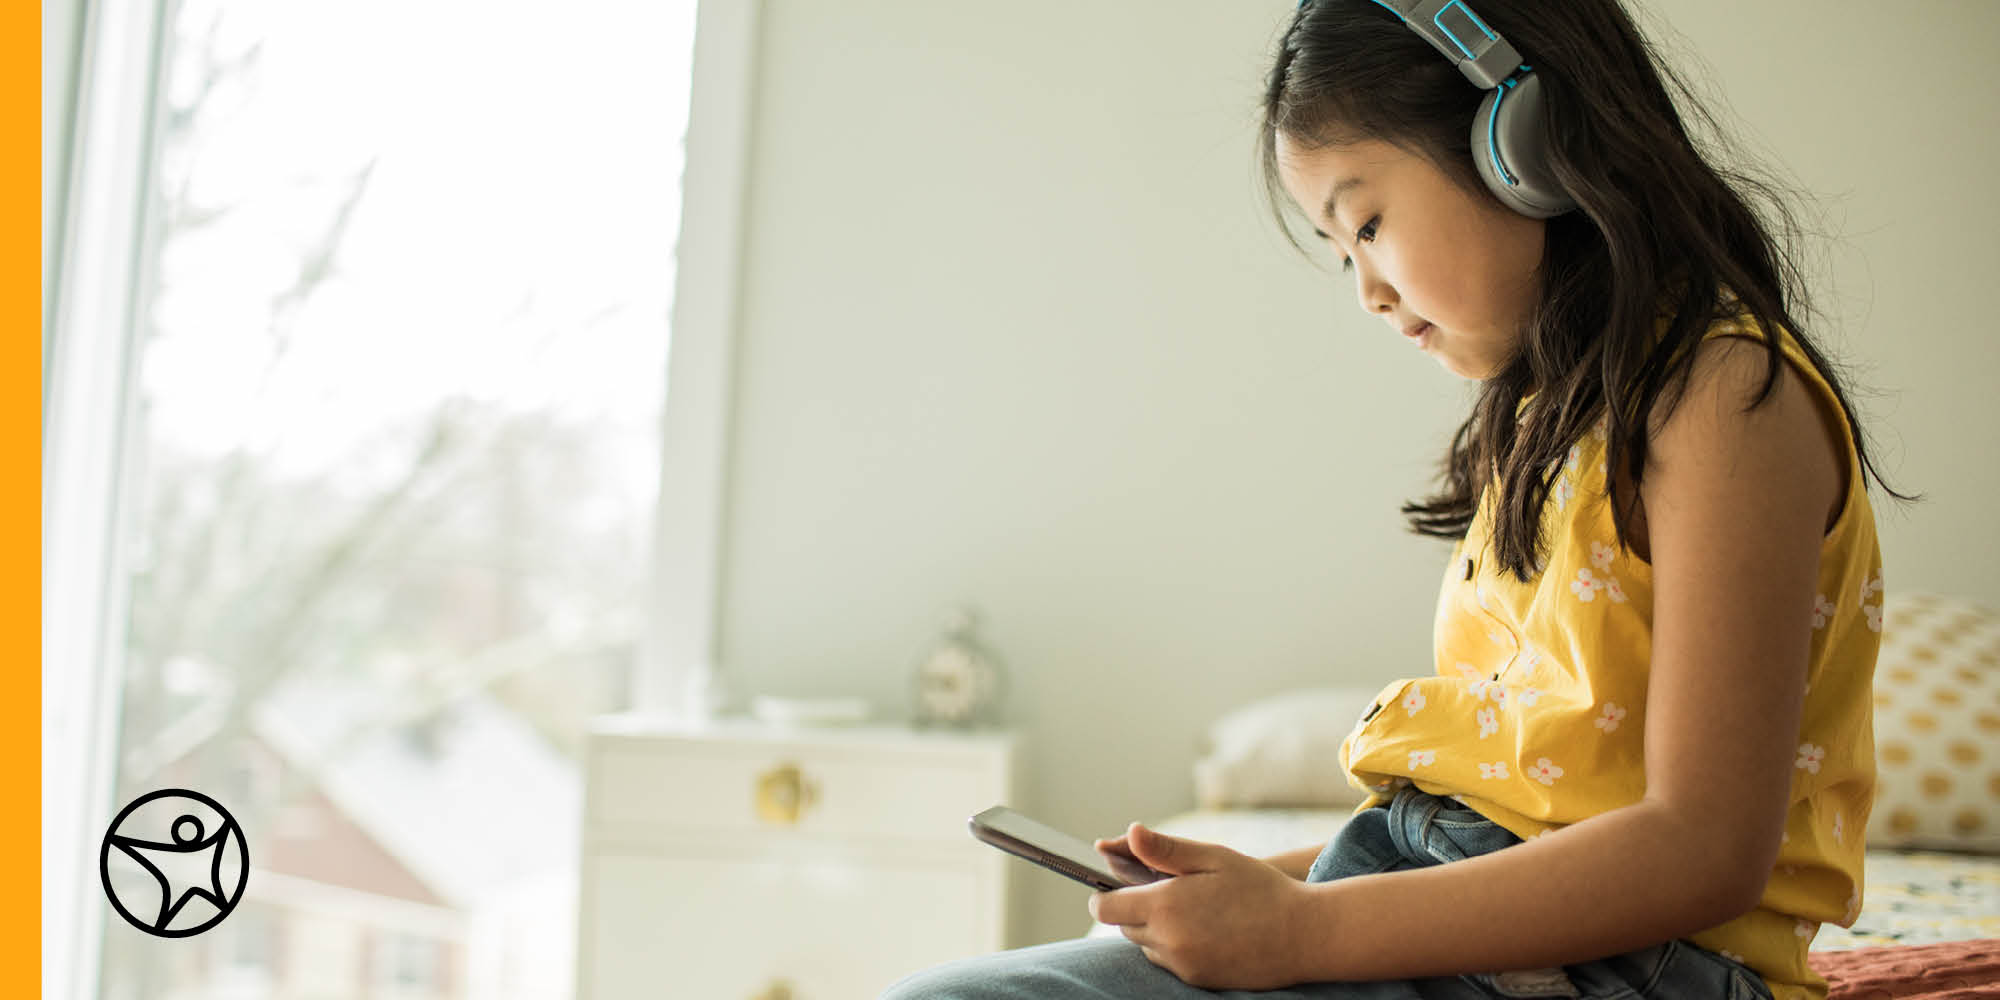 Young girl playing a game on a mobile phone wearing headphones